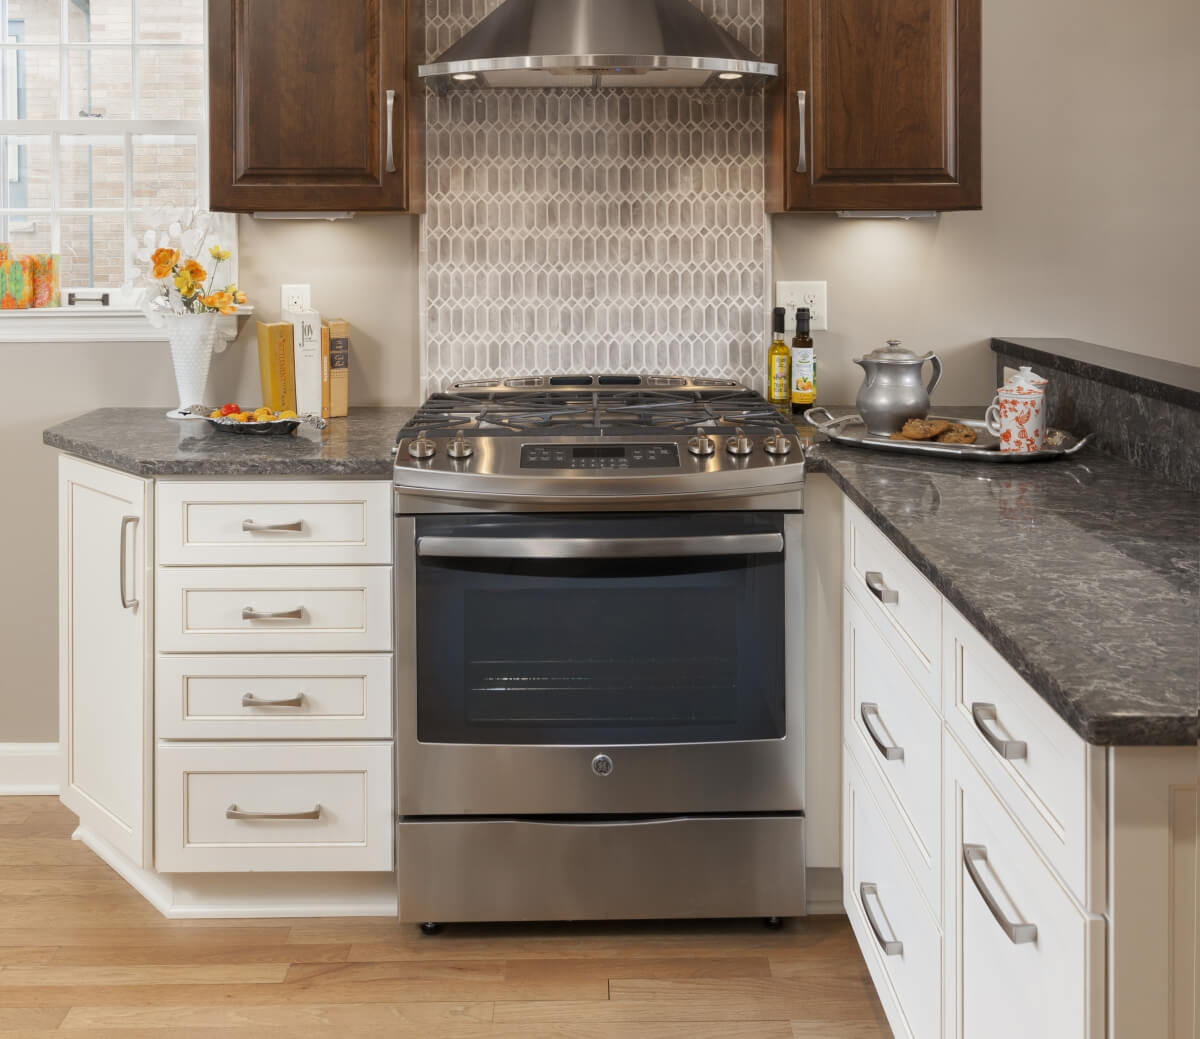 This warm and inviting kitchen features Dura Supreme Cabinetry's in